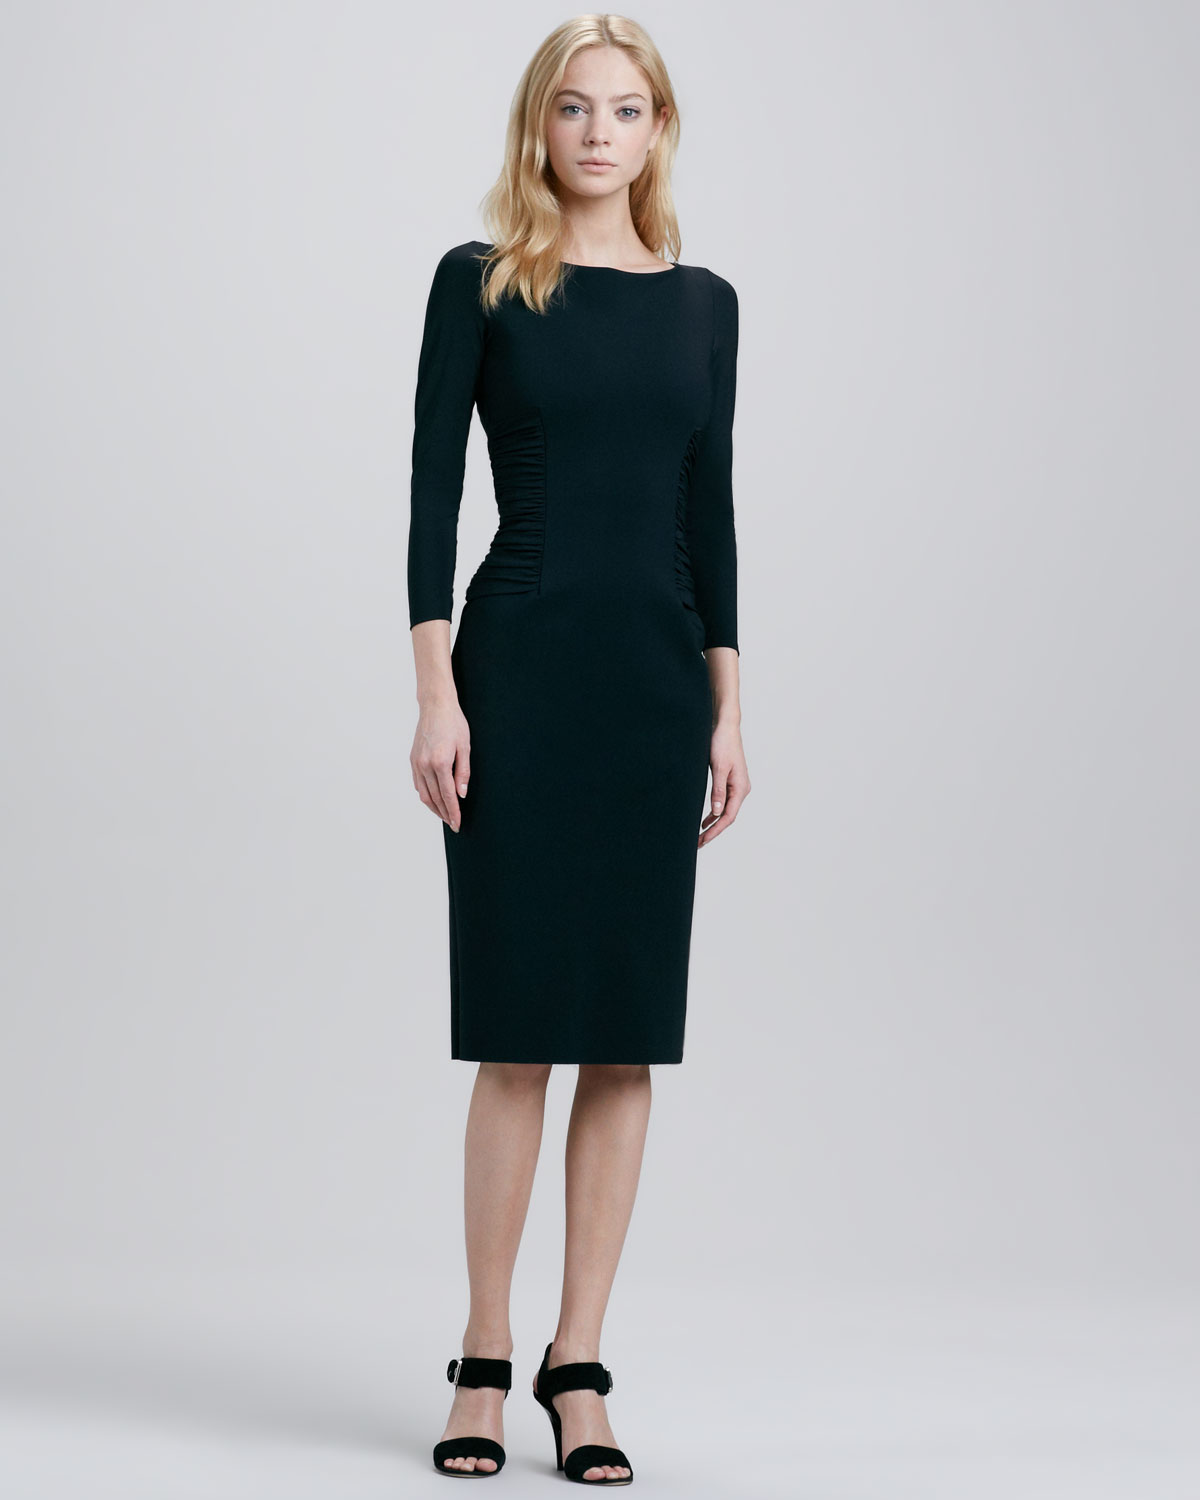 Chiara Boni The Most Popular Dress In America: La Petite Robe Di Chiara Boni Paolina Openback Tie